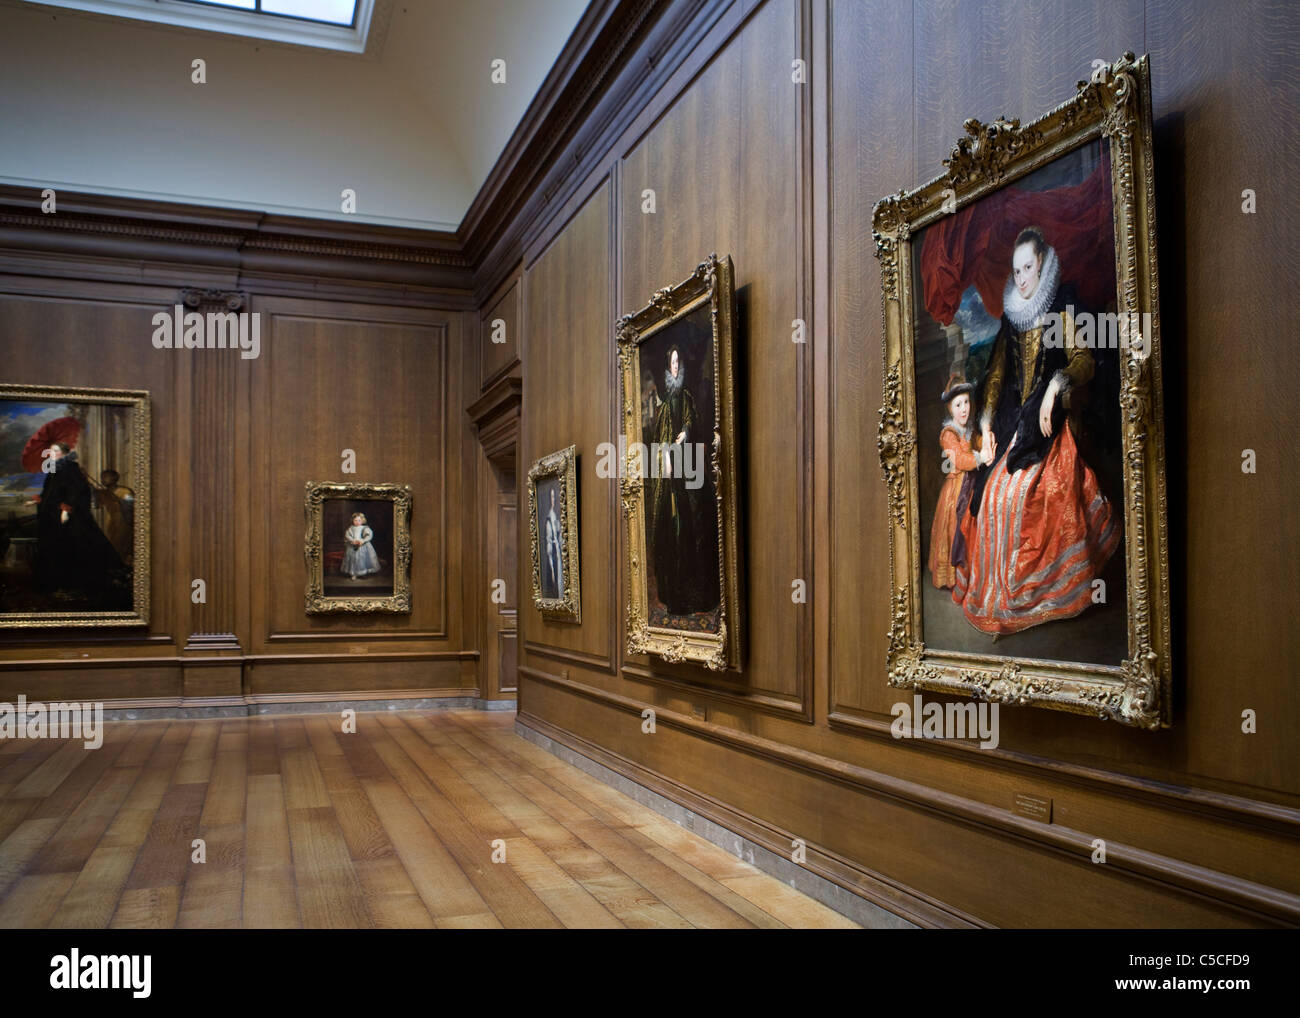 ... Fine-art paintings hang on an art gallery walls lined in fine woodwork  - Stock